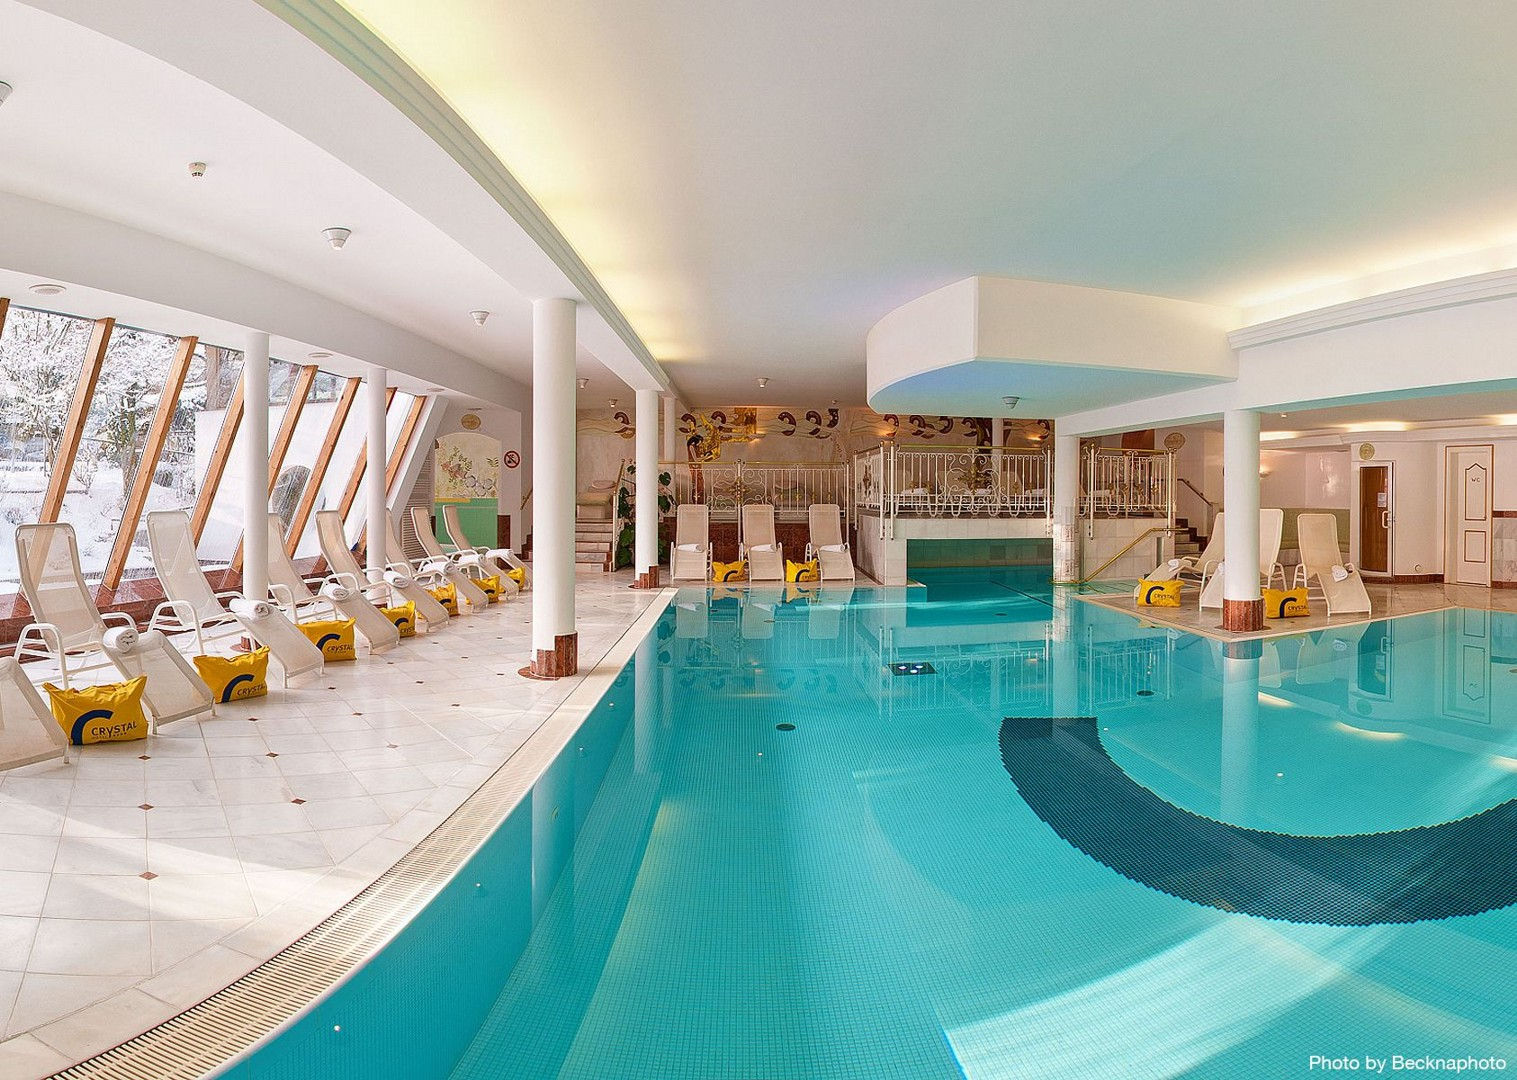 hotel-swimming-pool-austria-family-cycling-holiday.jpg - Austria - Tyrolean Valleys - Family Cycling